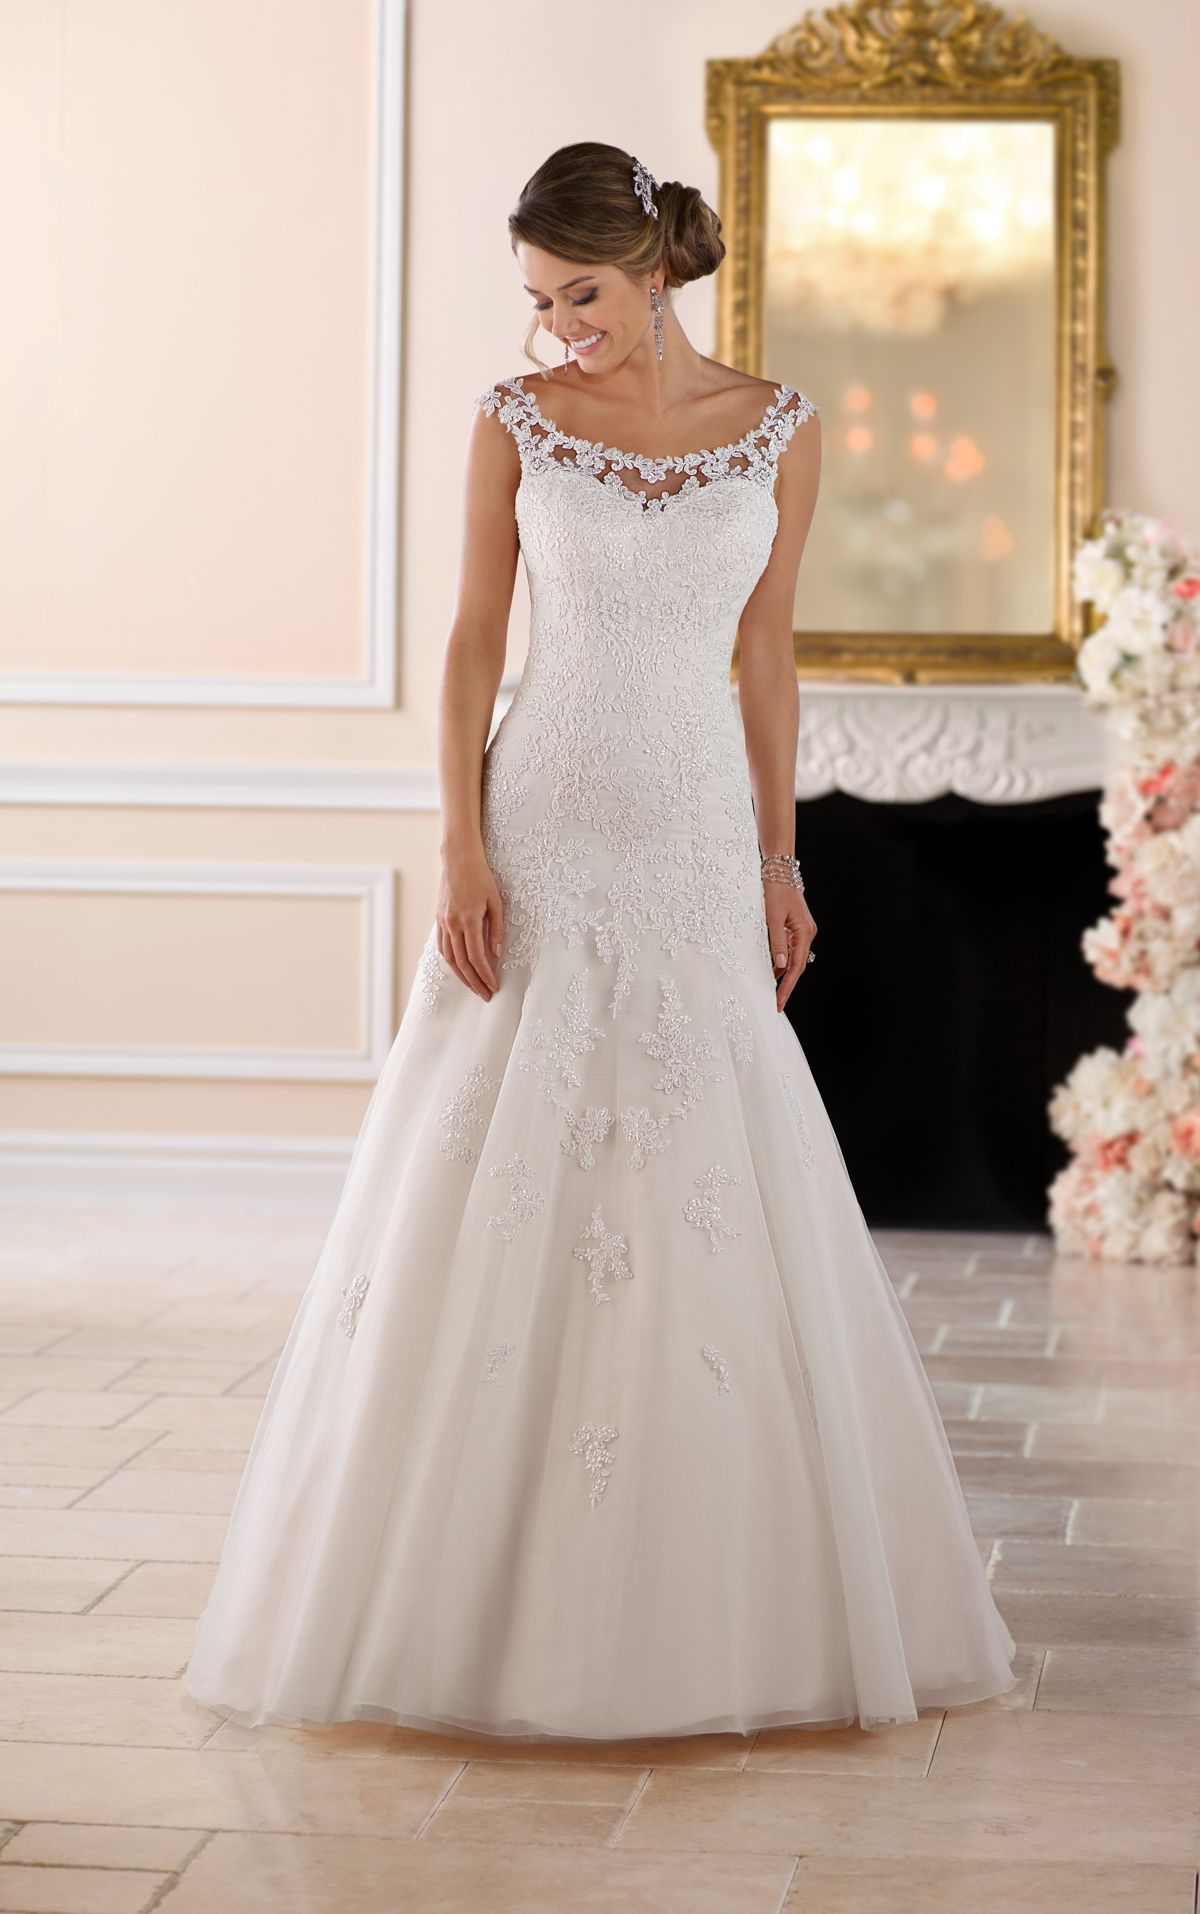 Vestido de novia de Stella York 2017/ Stella York 2017 wedding dress.